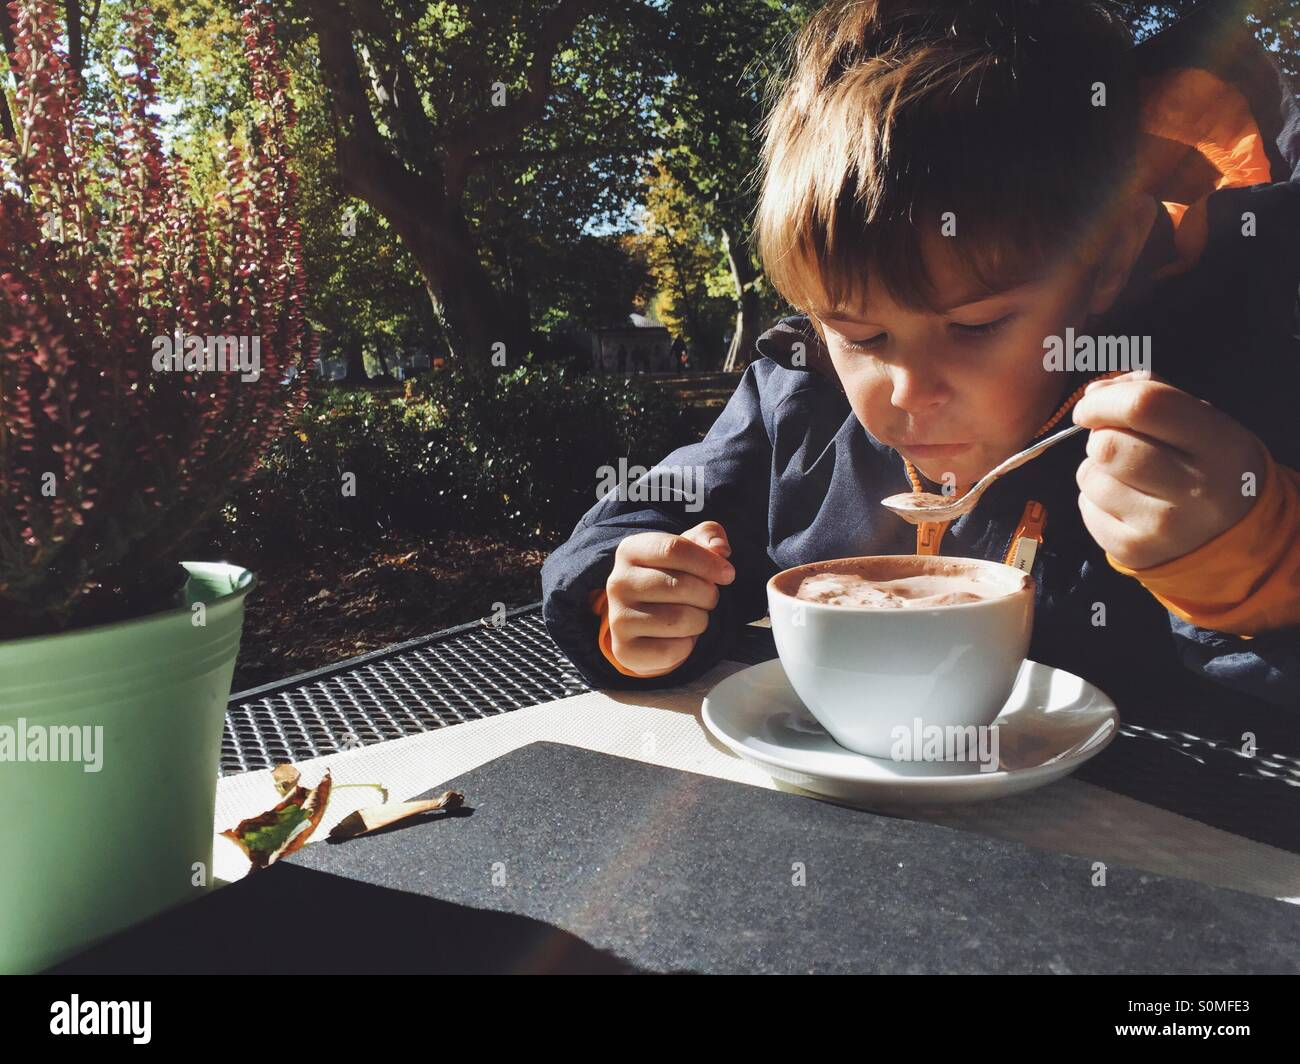 Five year old boy drinking hot chocolate outside - Stock Image